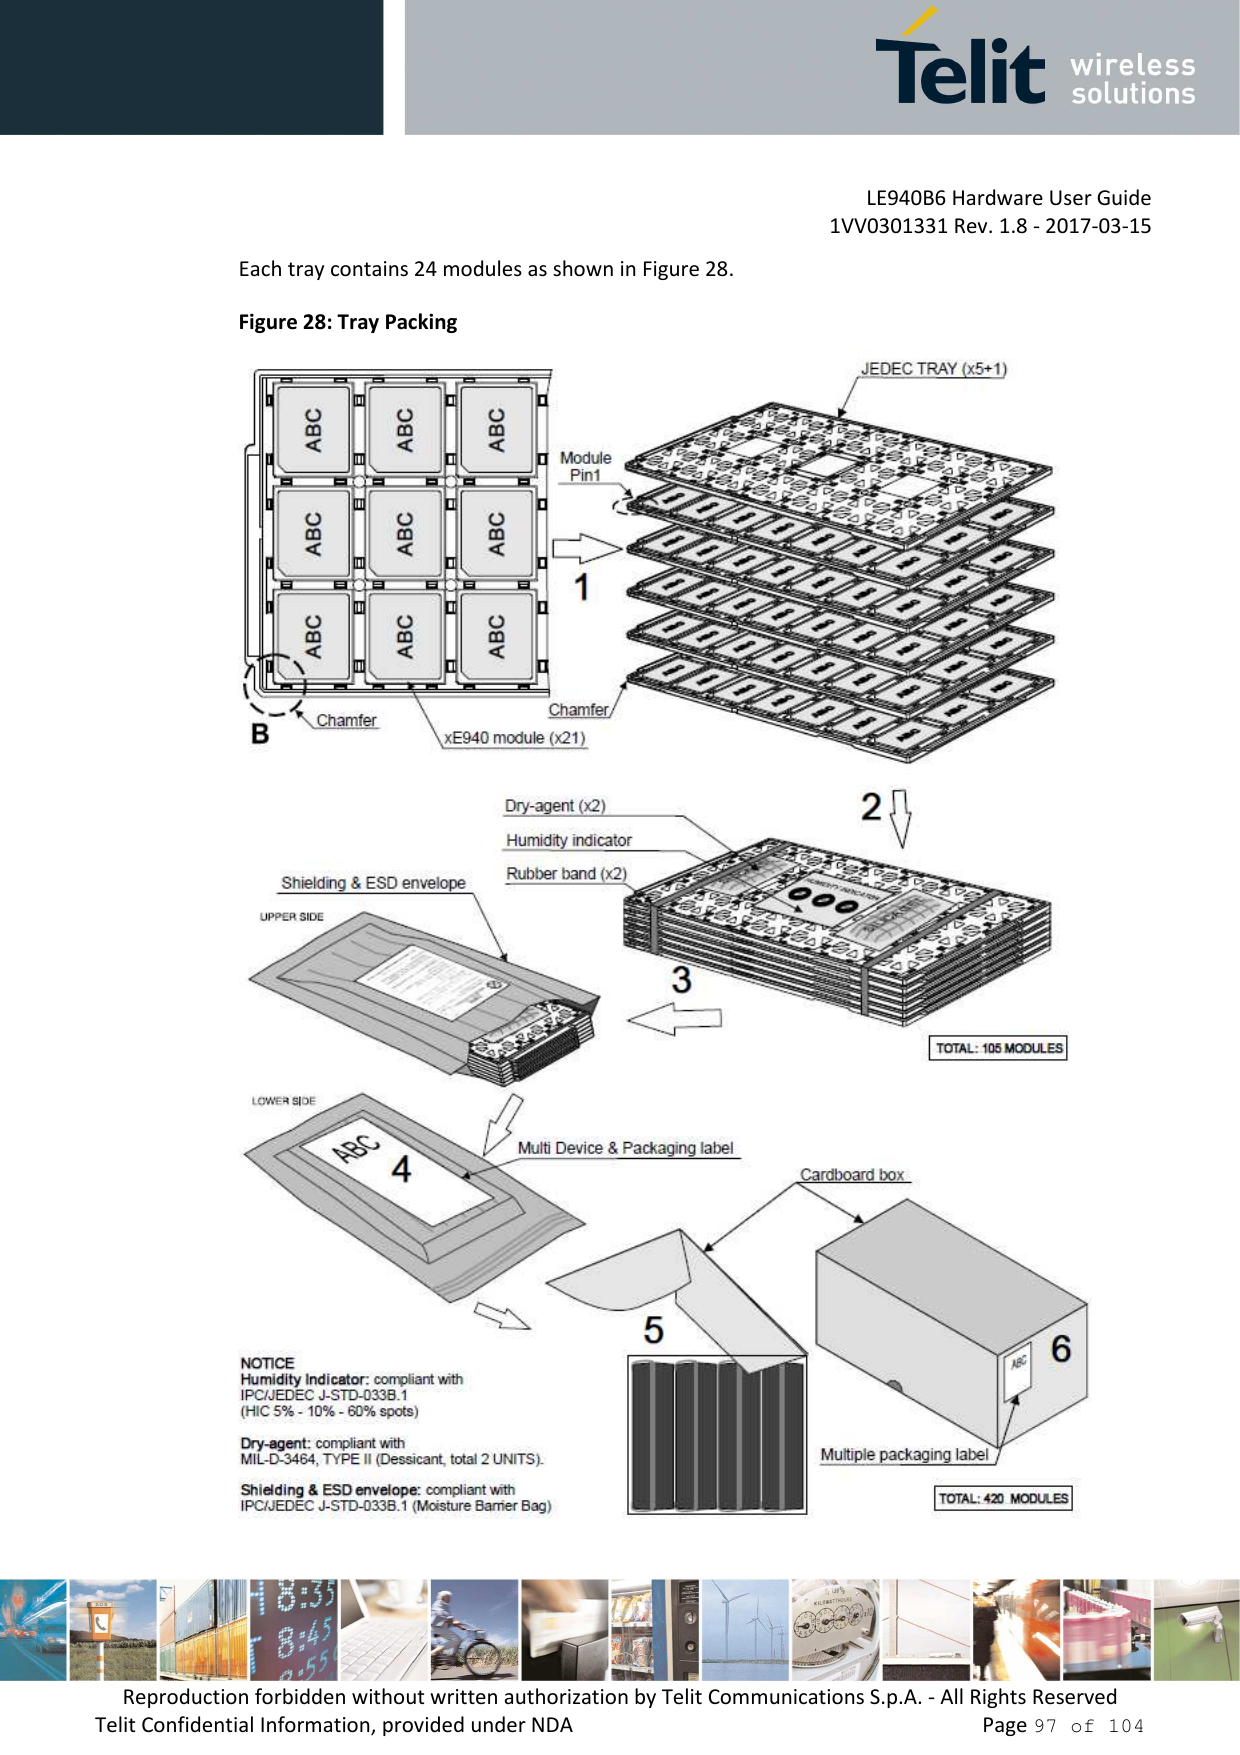 LE940B6 Hardware User Guide     1VV0301331 Rev. 1.8 - 2017-03-15 Reproduction forbidden without written authorization by Telit Communications S.p.A. - All Rights Reserved Telit Confidential Information, provided under NDA                 Page 97 of 104 Each tray contains 24 modules as shown in Figure 28. Figure 28: Tray Packing